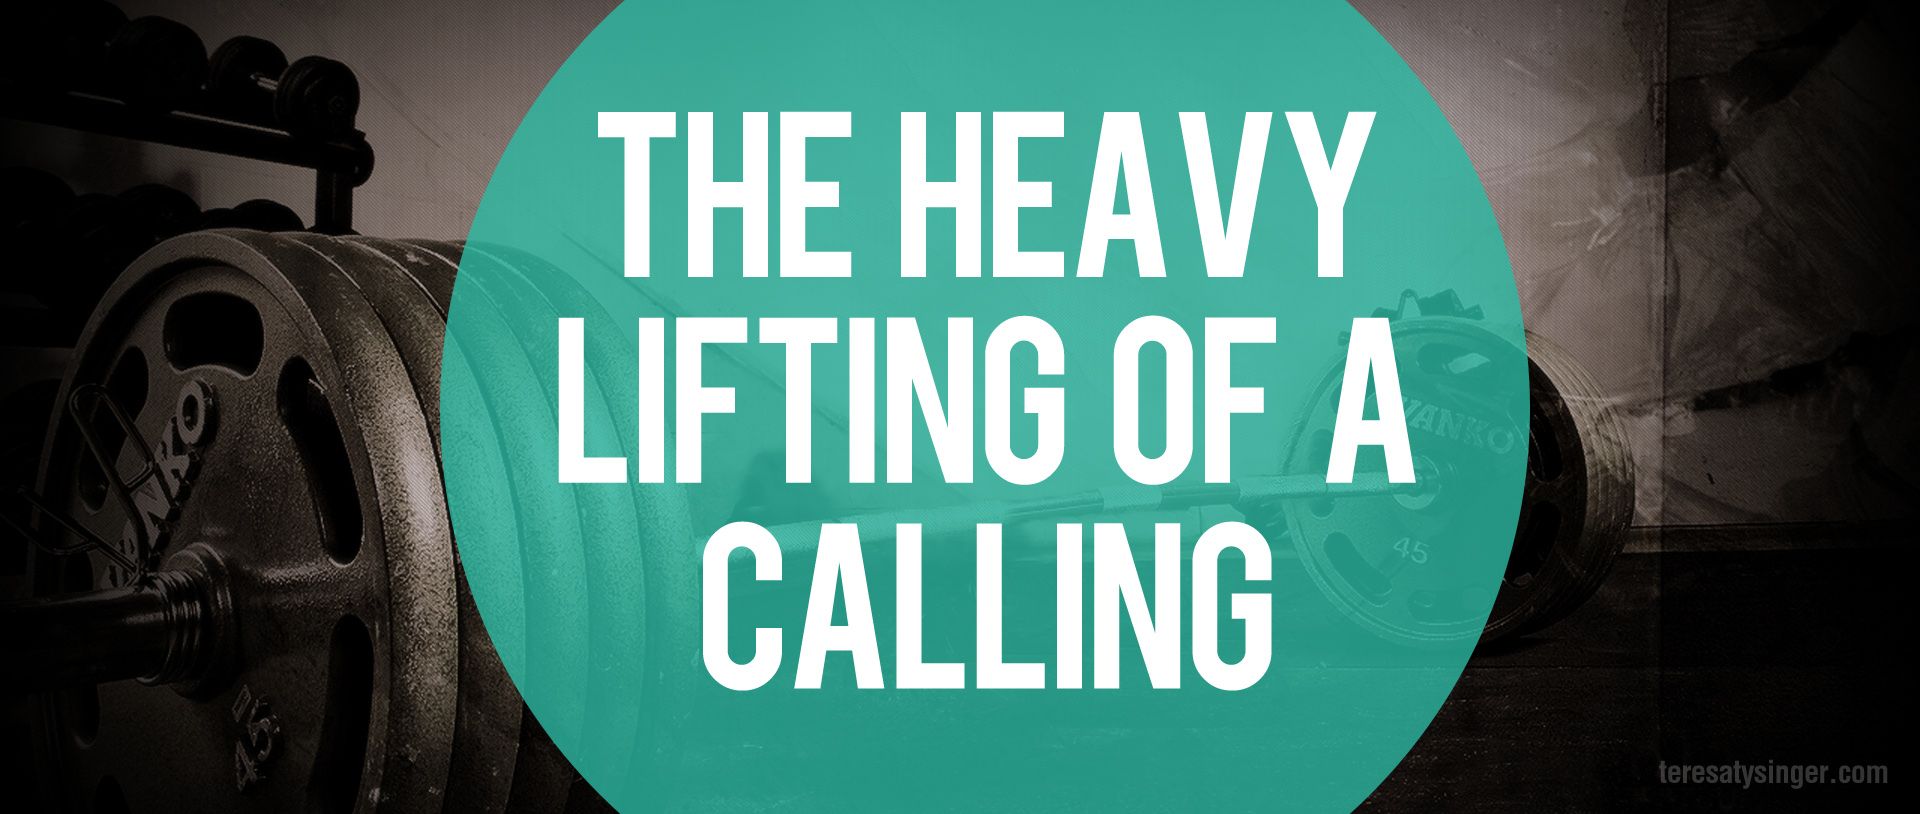 The Heavy Lifting of a Calling – Teresa Tysinger, Author